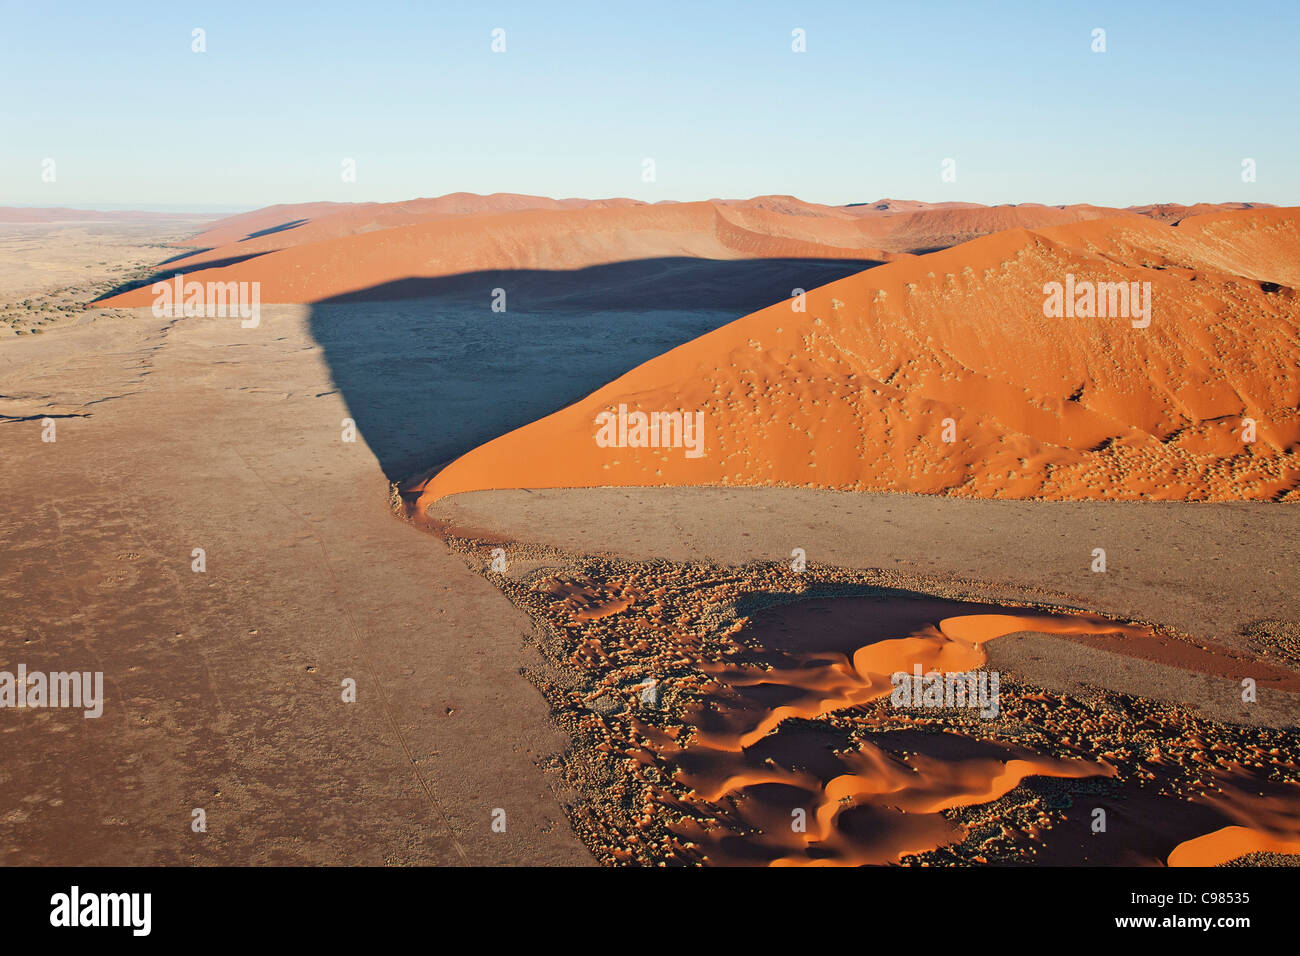 Aerial view of massive sand dunes - Stock Image